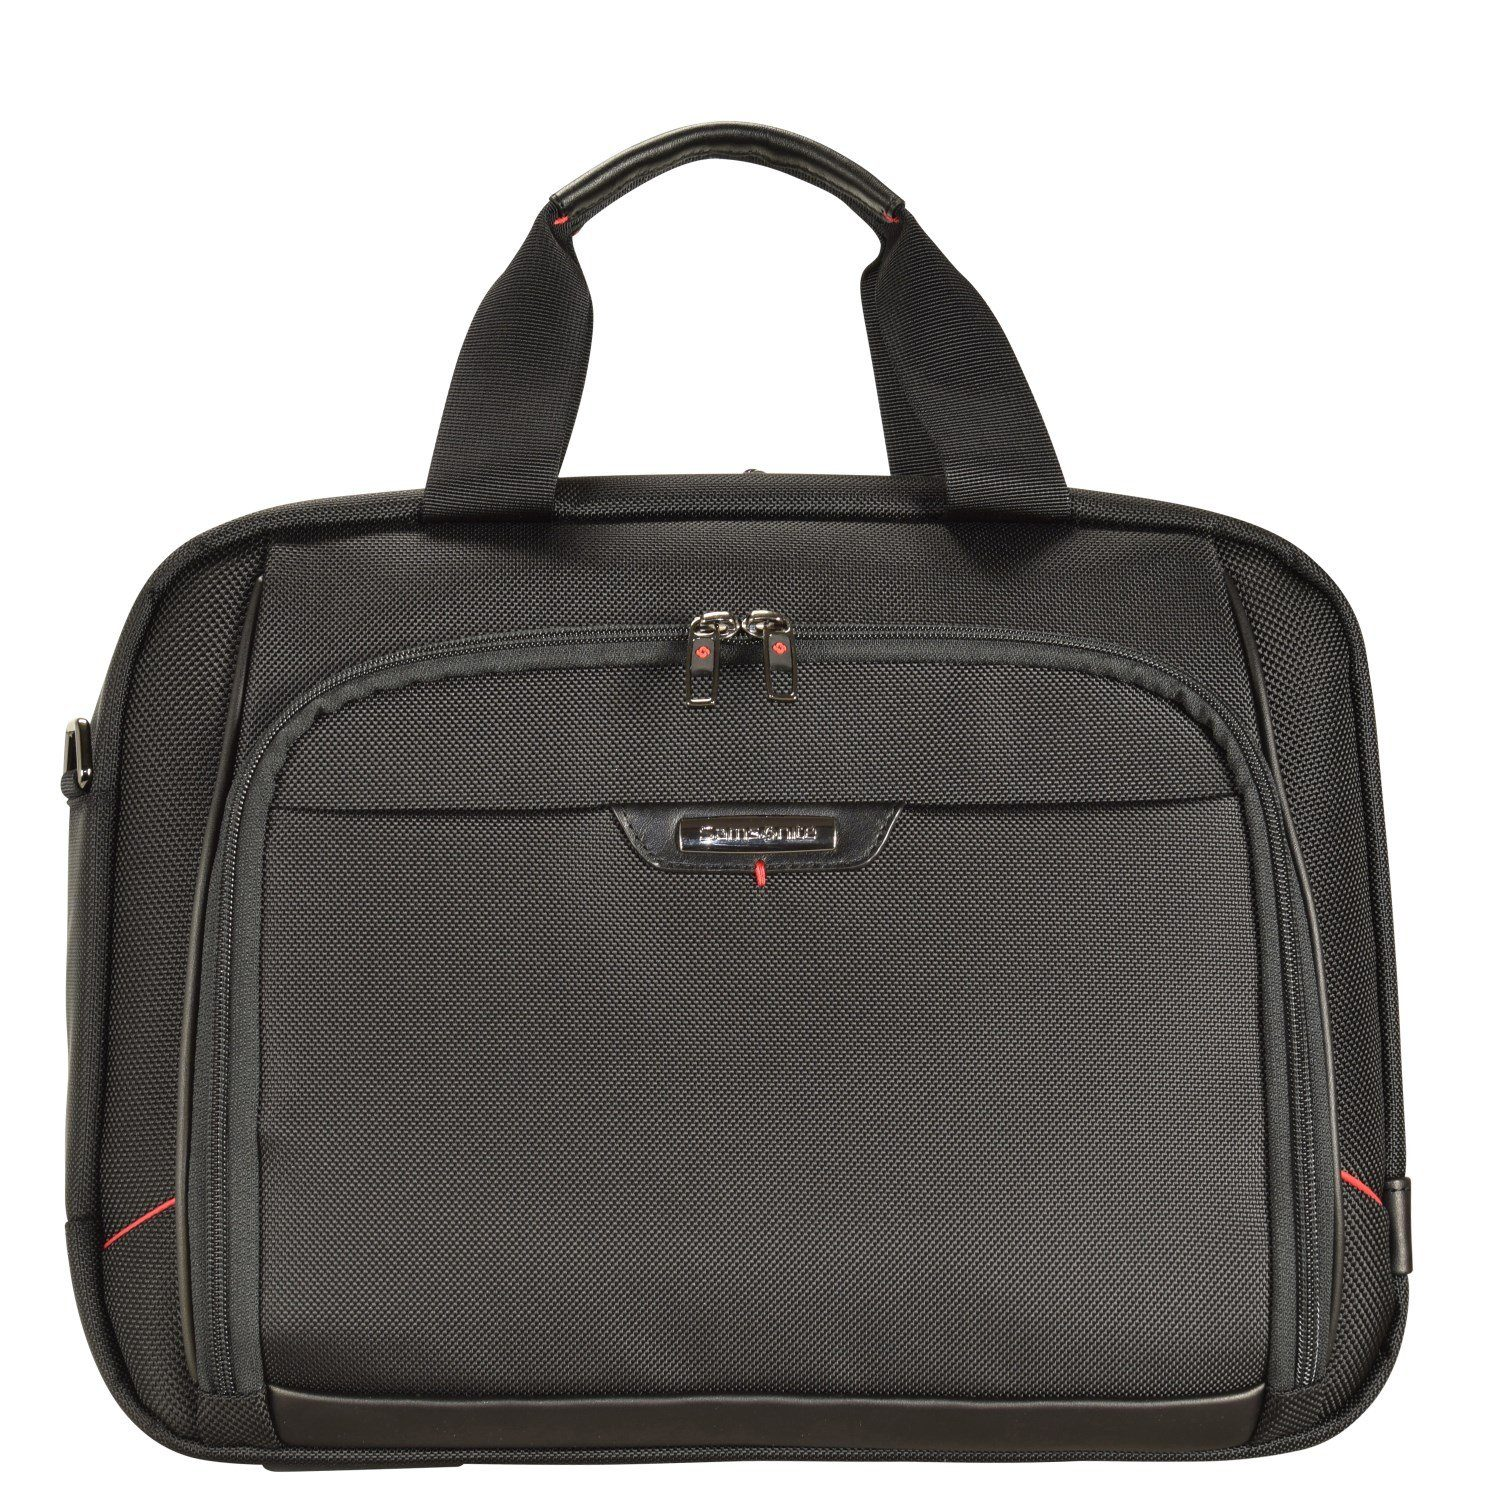 Samsonite Pro-DLX 4 Business Aktentasche 40 cm Laptopfach